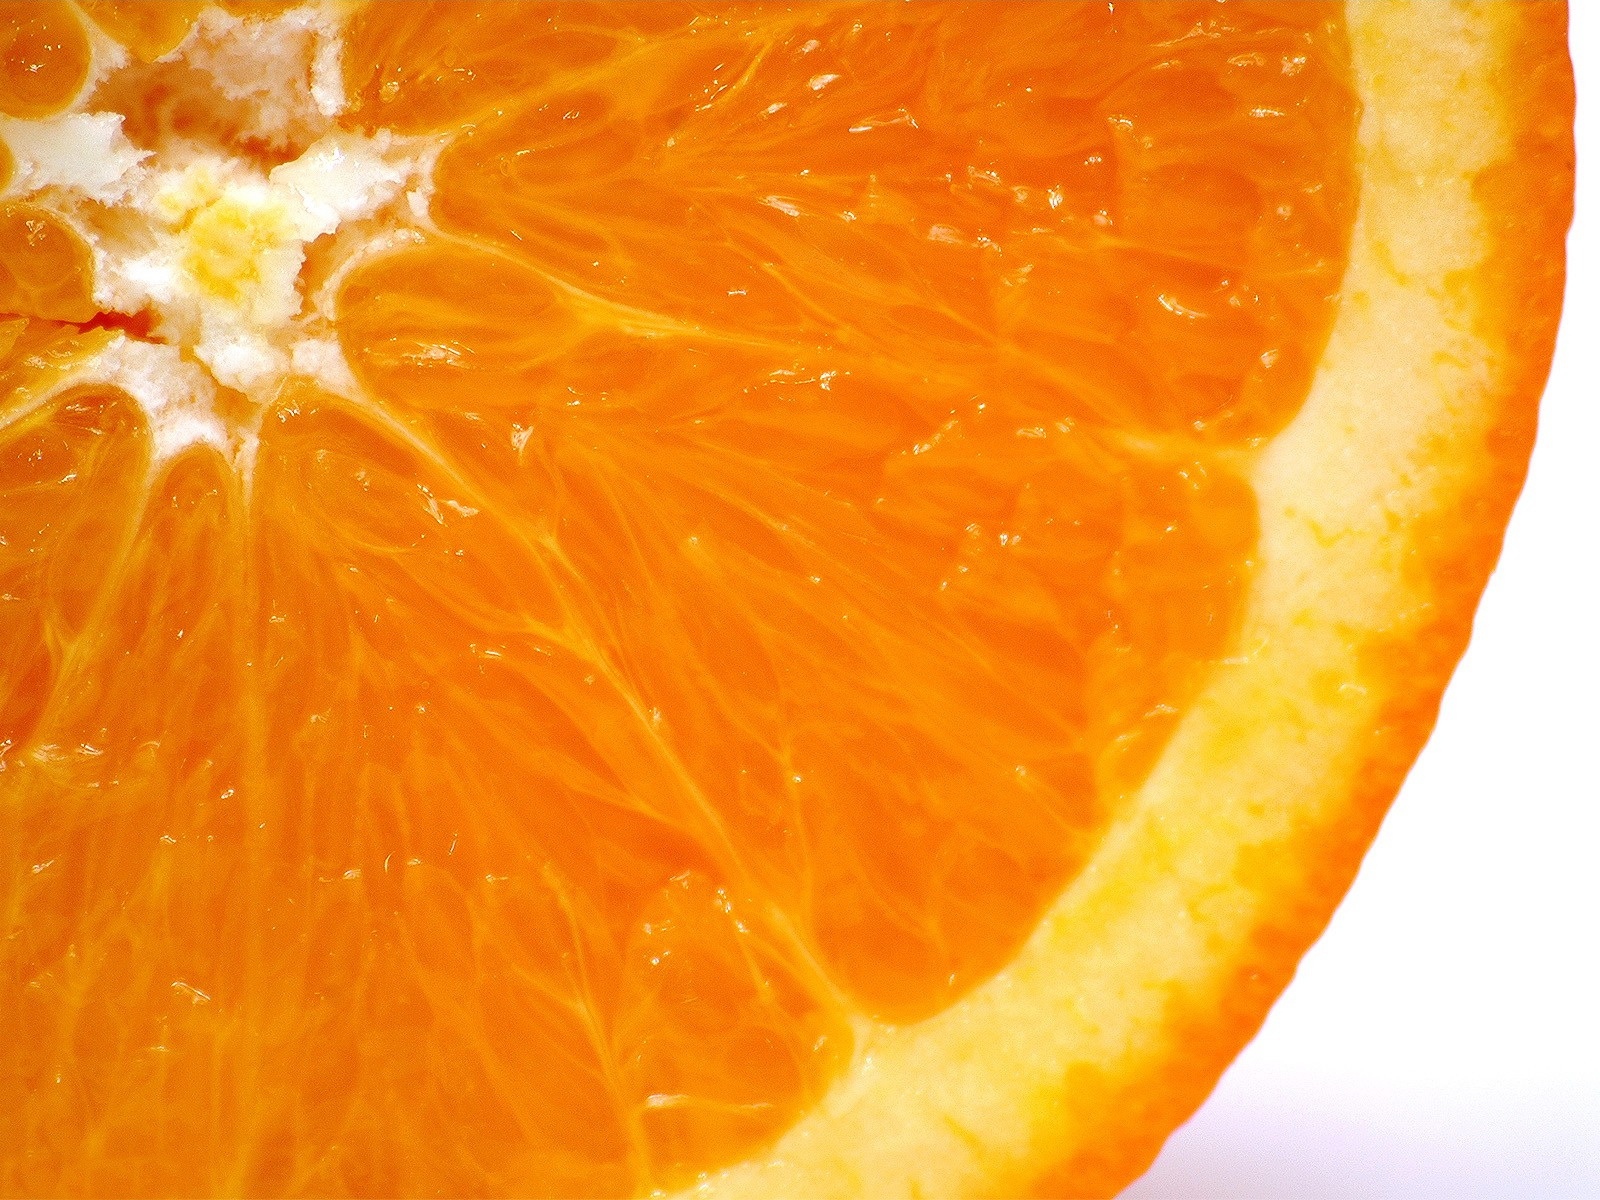 Orange+fruit+wallpaper